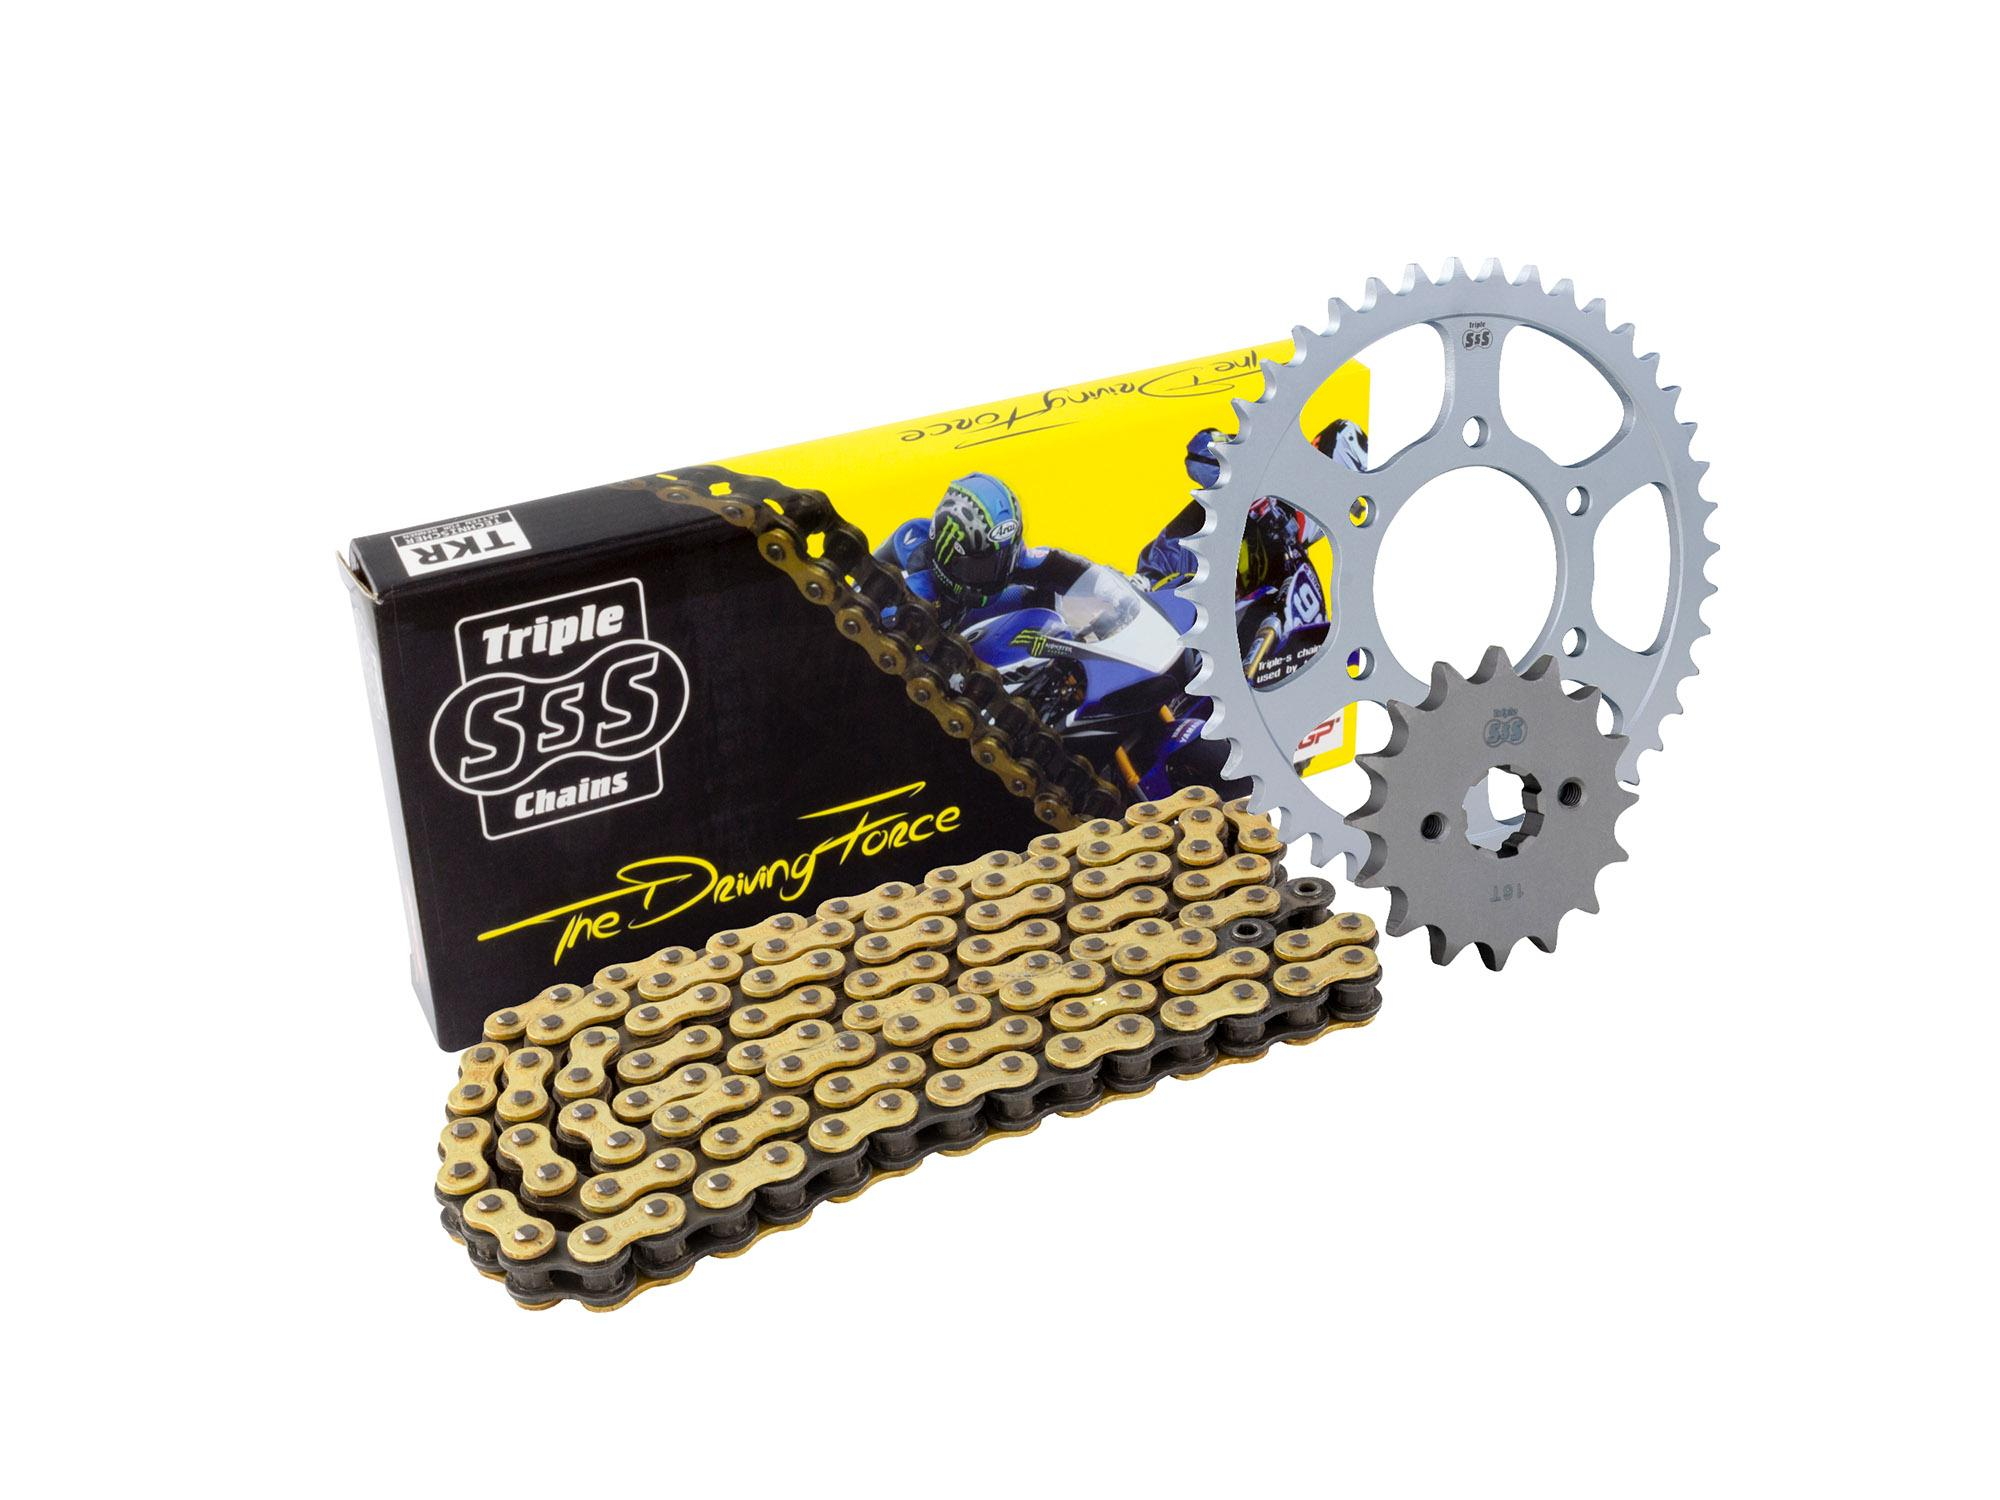 Honda CBR1000 RR Fireblade 06-07 Chain & Sprocket Kit: 16T Front, 42T Rear, HD O-Ring Gold Chain 530H 114Link